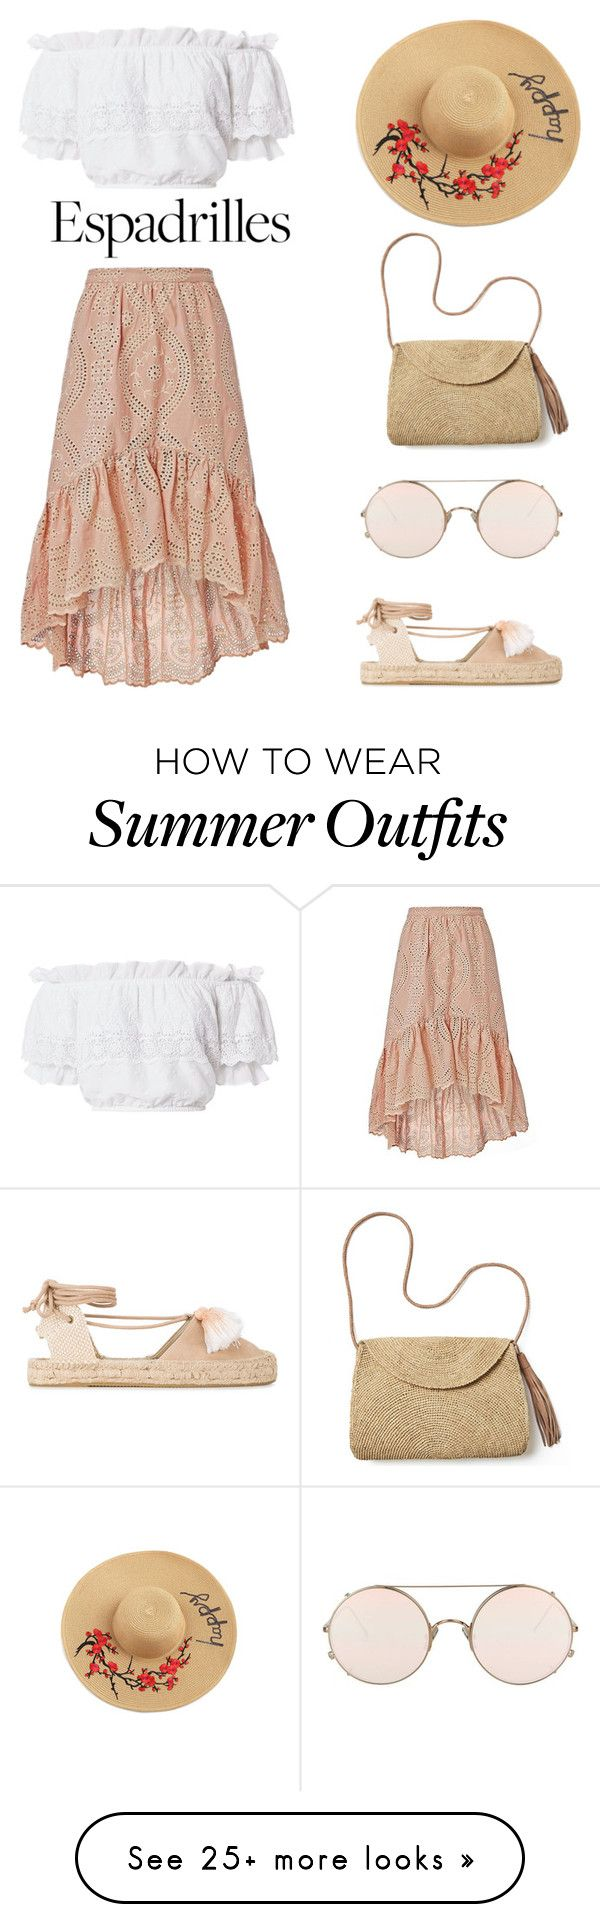 """Espadrilles for the day outfit"" by trishsa on Polyvore featuring Solu..."